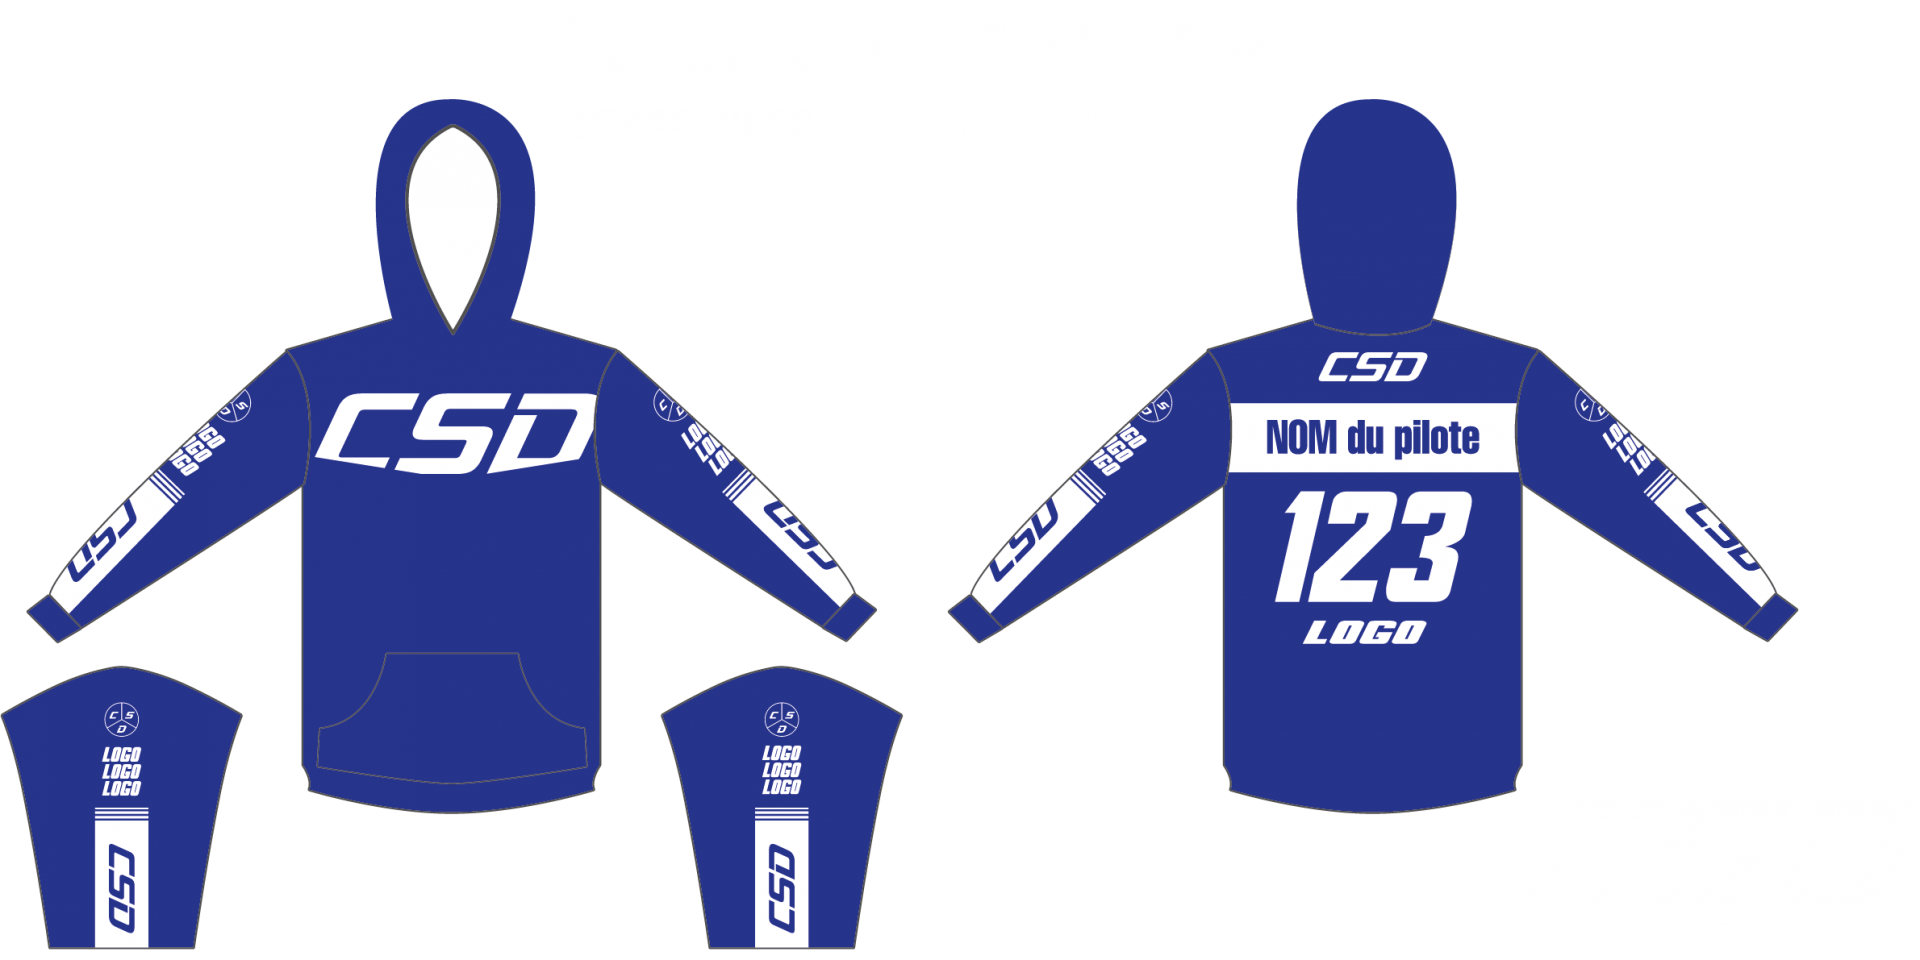 Sweat csd bleu blanc